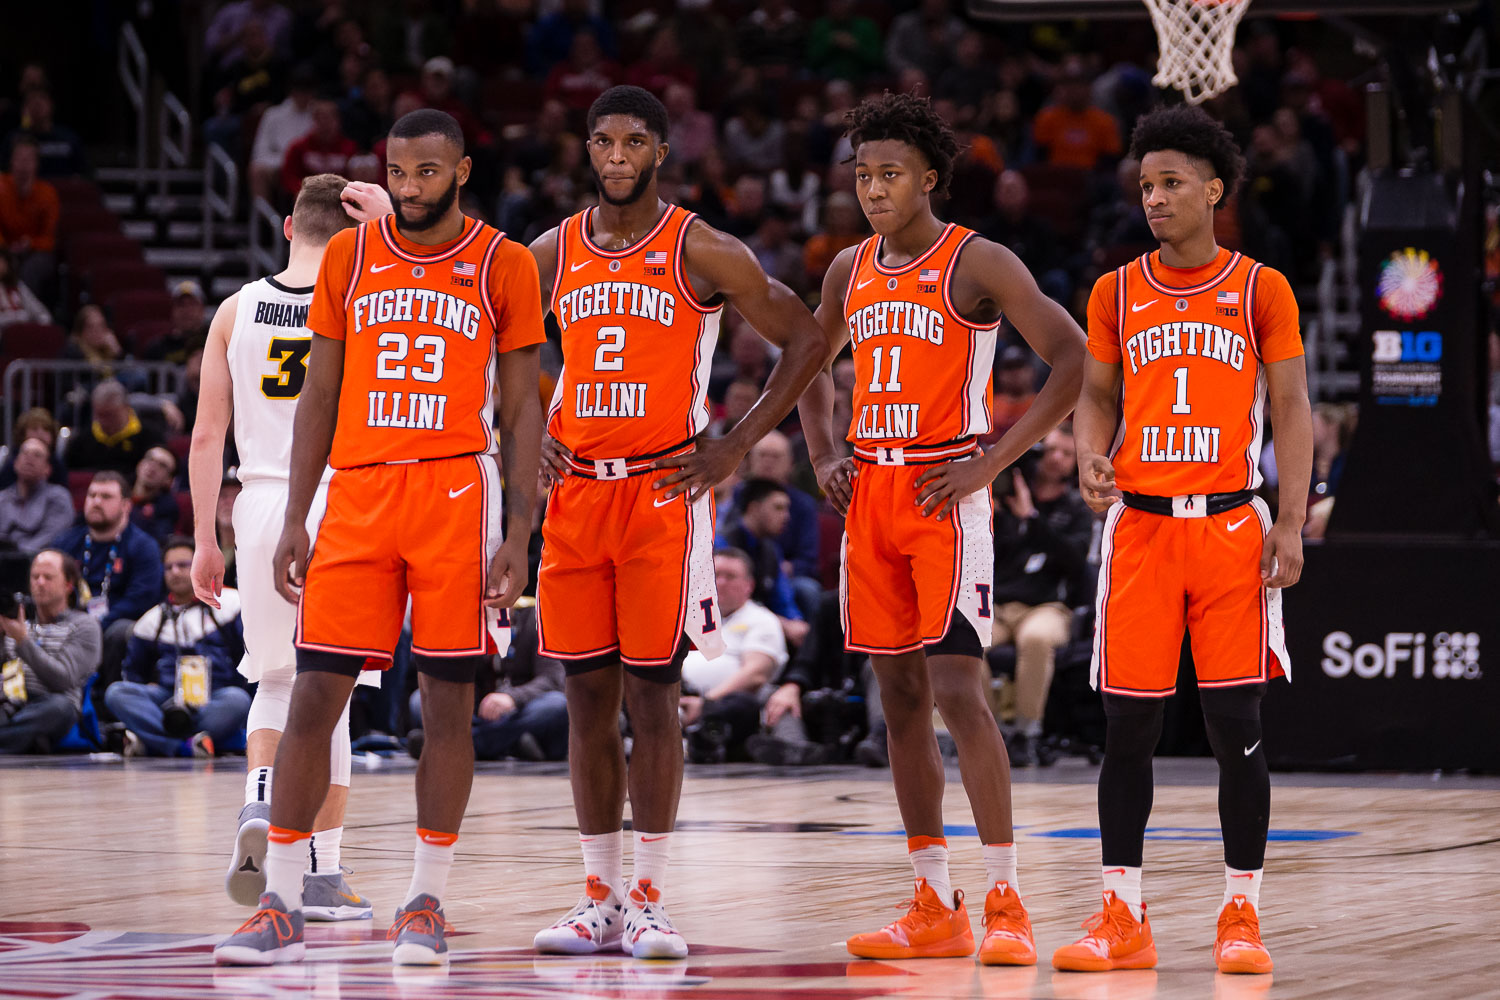 Illinois guard Aaron Jordan (23), forward Kipper Nichols (2), guard Ayo Dosunmu (11) and guard Trent Frazier (1) watch forward Giorgi Bezhanishvili (15) shoot two free throws after a technical foul during the game against Iowa in the second round of the Big Ten Tournament at the United Center on Thursday, March 14. The Illini lost 83-62.